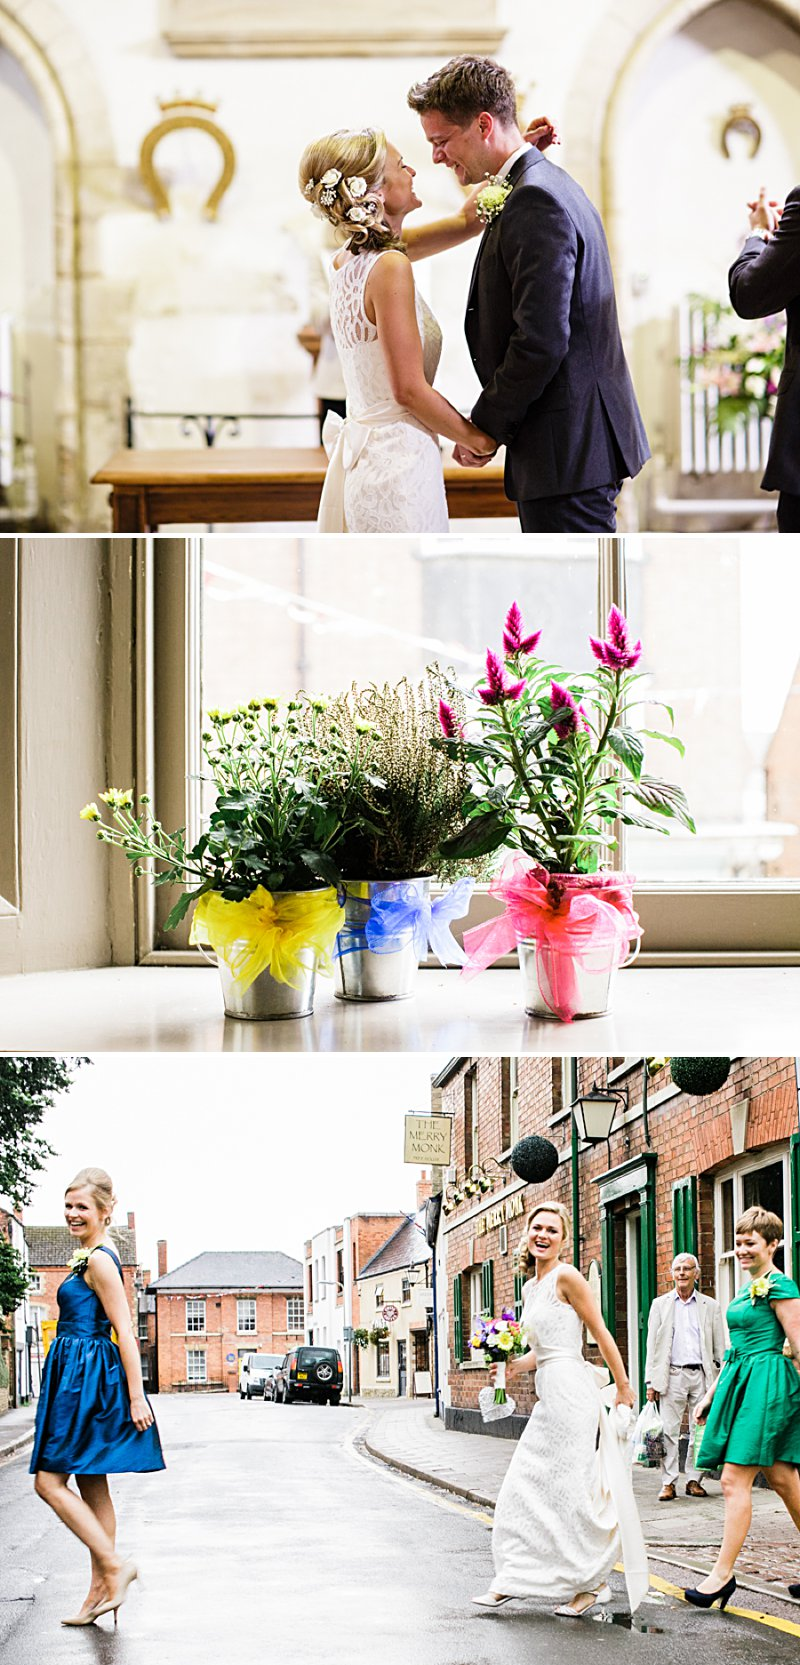 A fun foody Wedding At Victoria Hall With An After Six Dress by Dessy And Groom In Hugo Boss Suit By Lucabella Photography. 0001 A Family Feast.